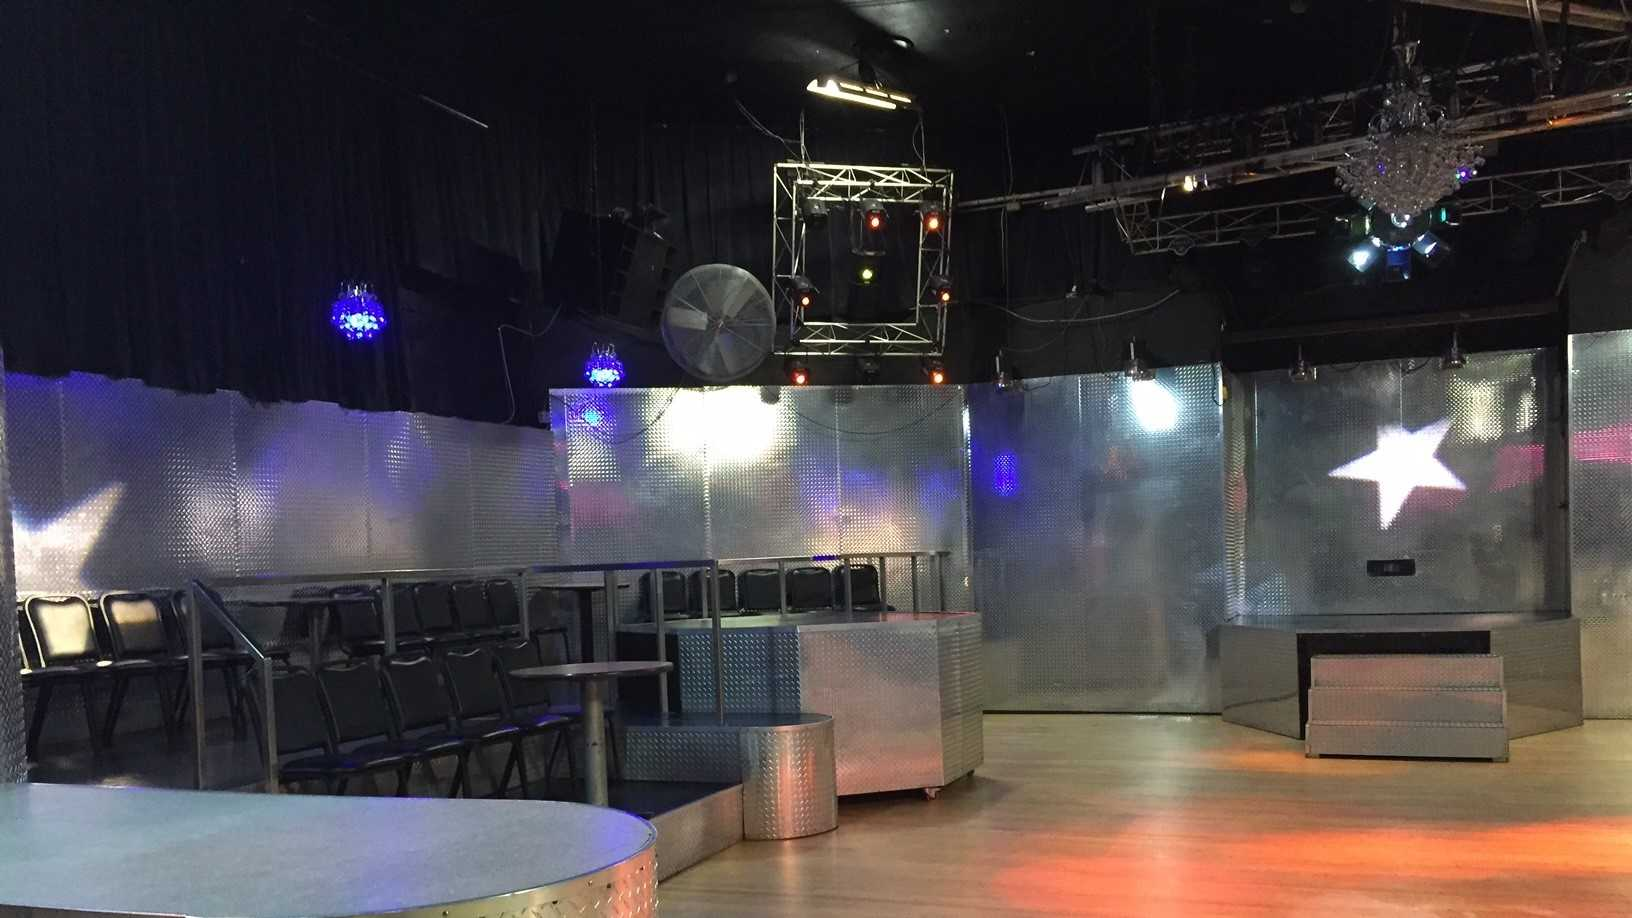 Scandals Nightclub in Asheville is adding extra security measures following the Orlando attack.